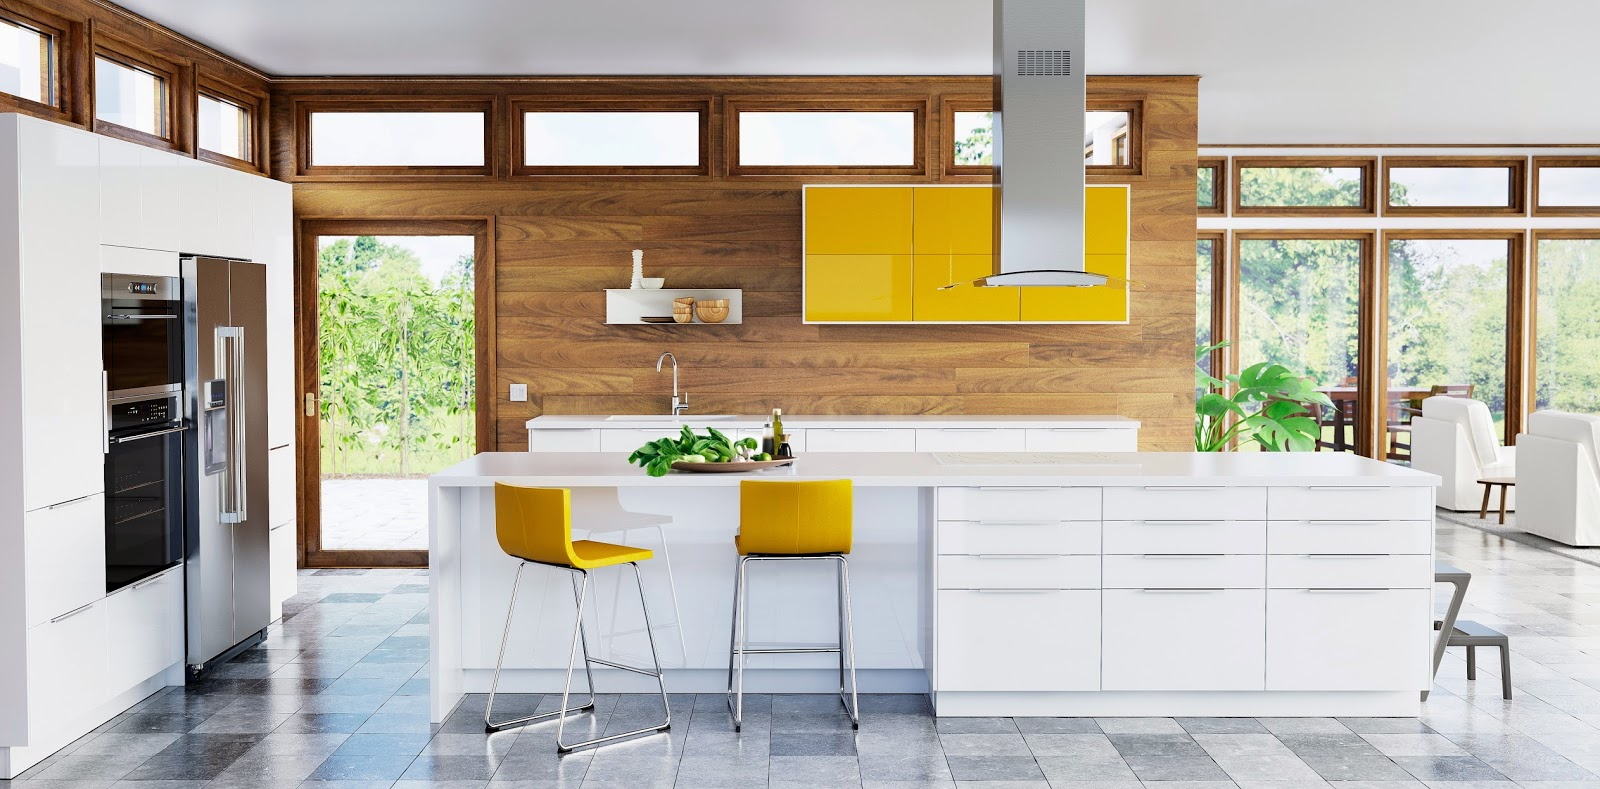 Ikea S New Sektion Kitchen Range Offers More Customization Options To Create The Dream Kitchen